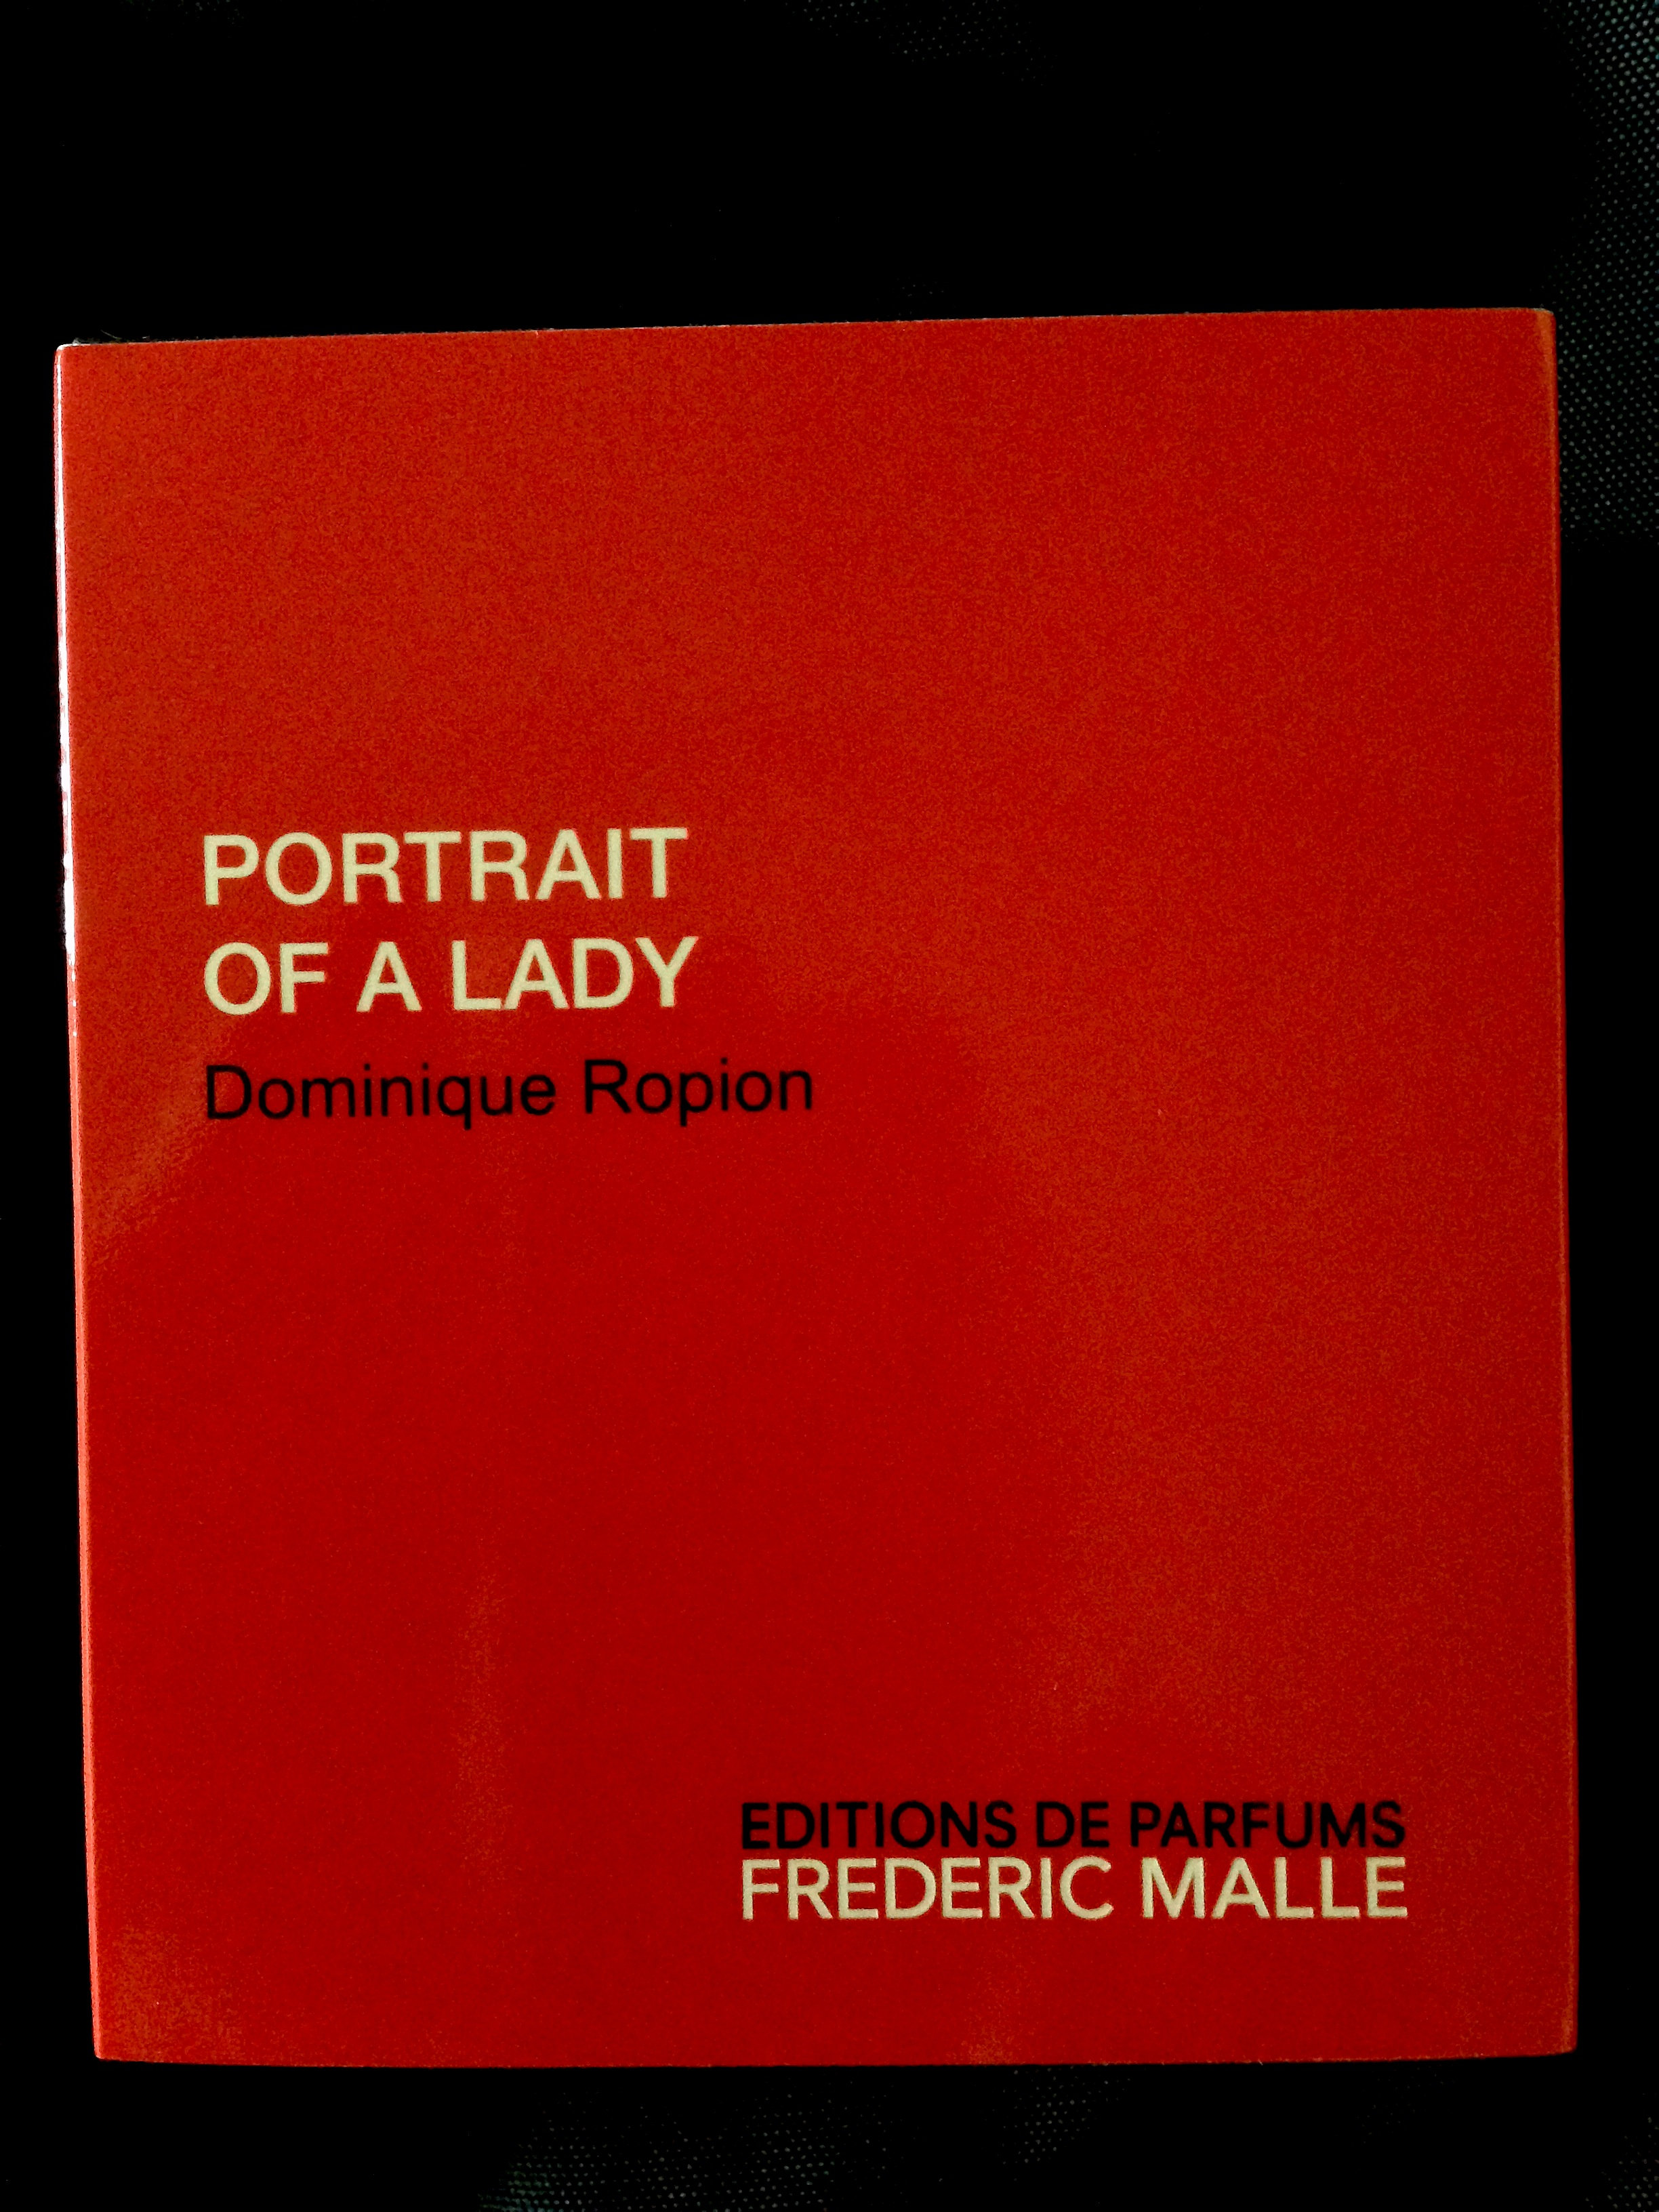 Portrait_Of_A_Lady_Frederic_Malle_Perfume_Review